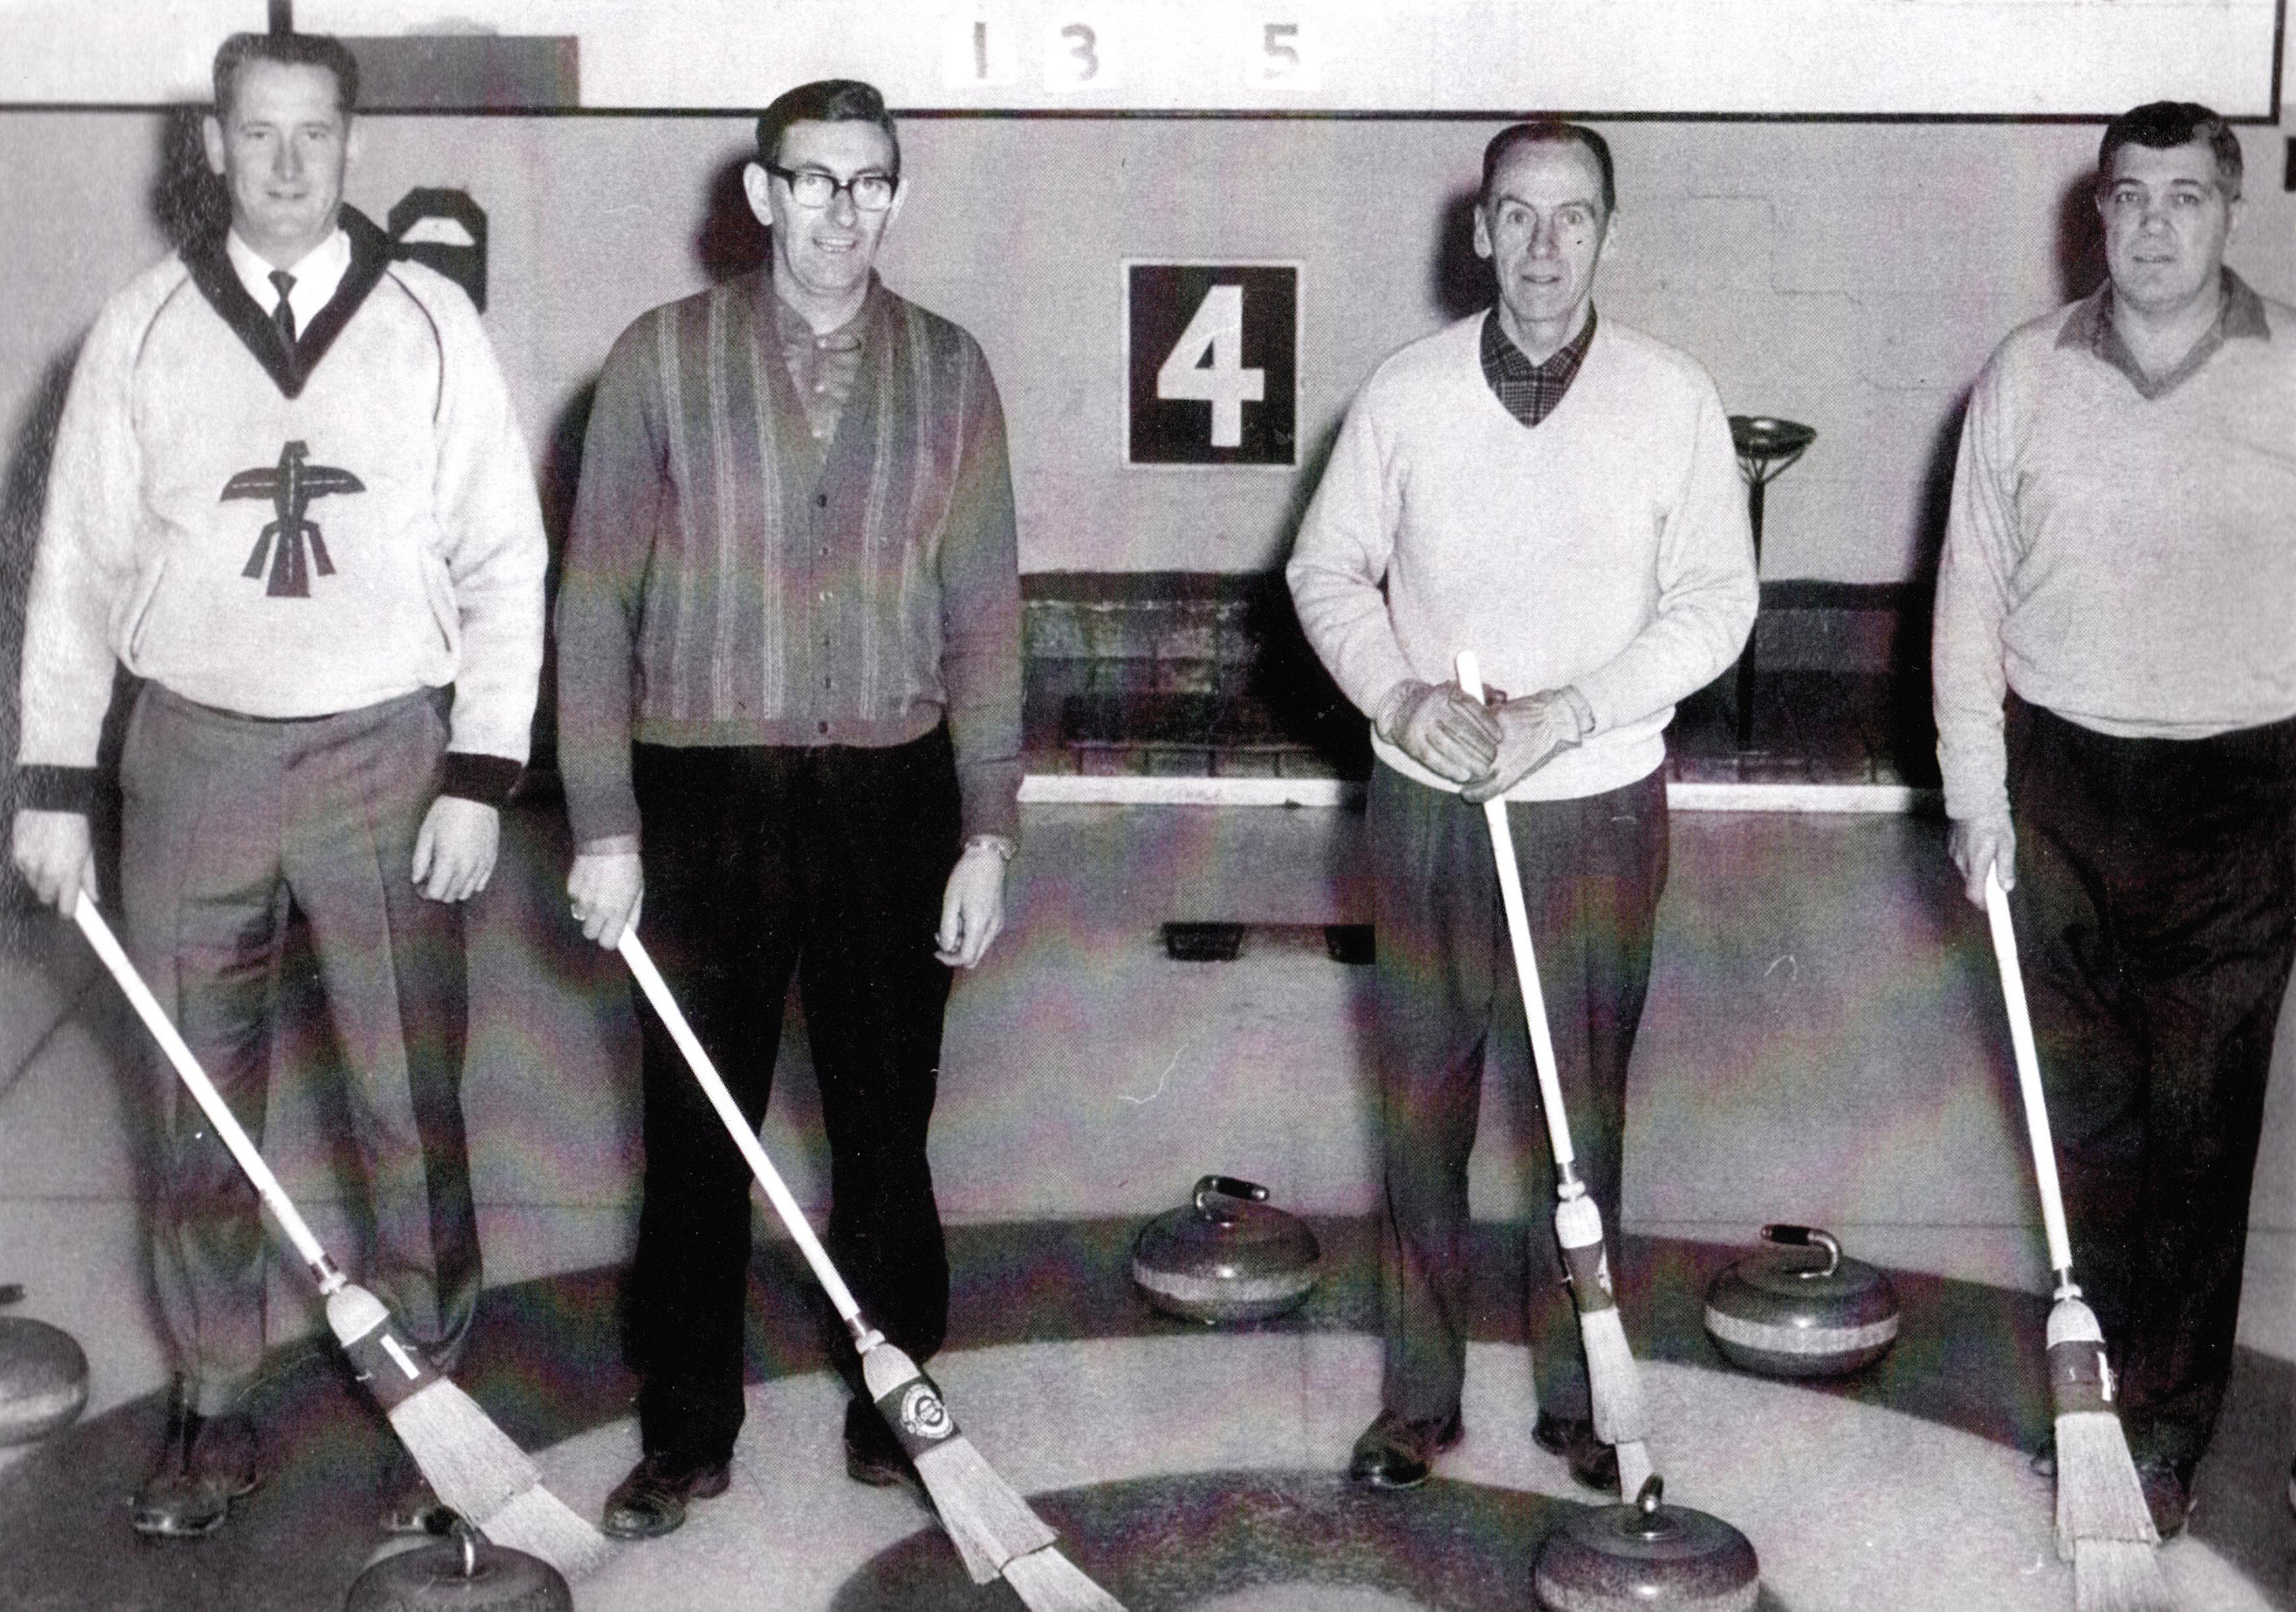 8 ender by Eugene Chapman (skip), Max Gray (third), Jack Coughlan (second), Russell Harkness (lead)